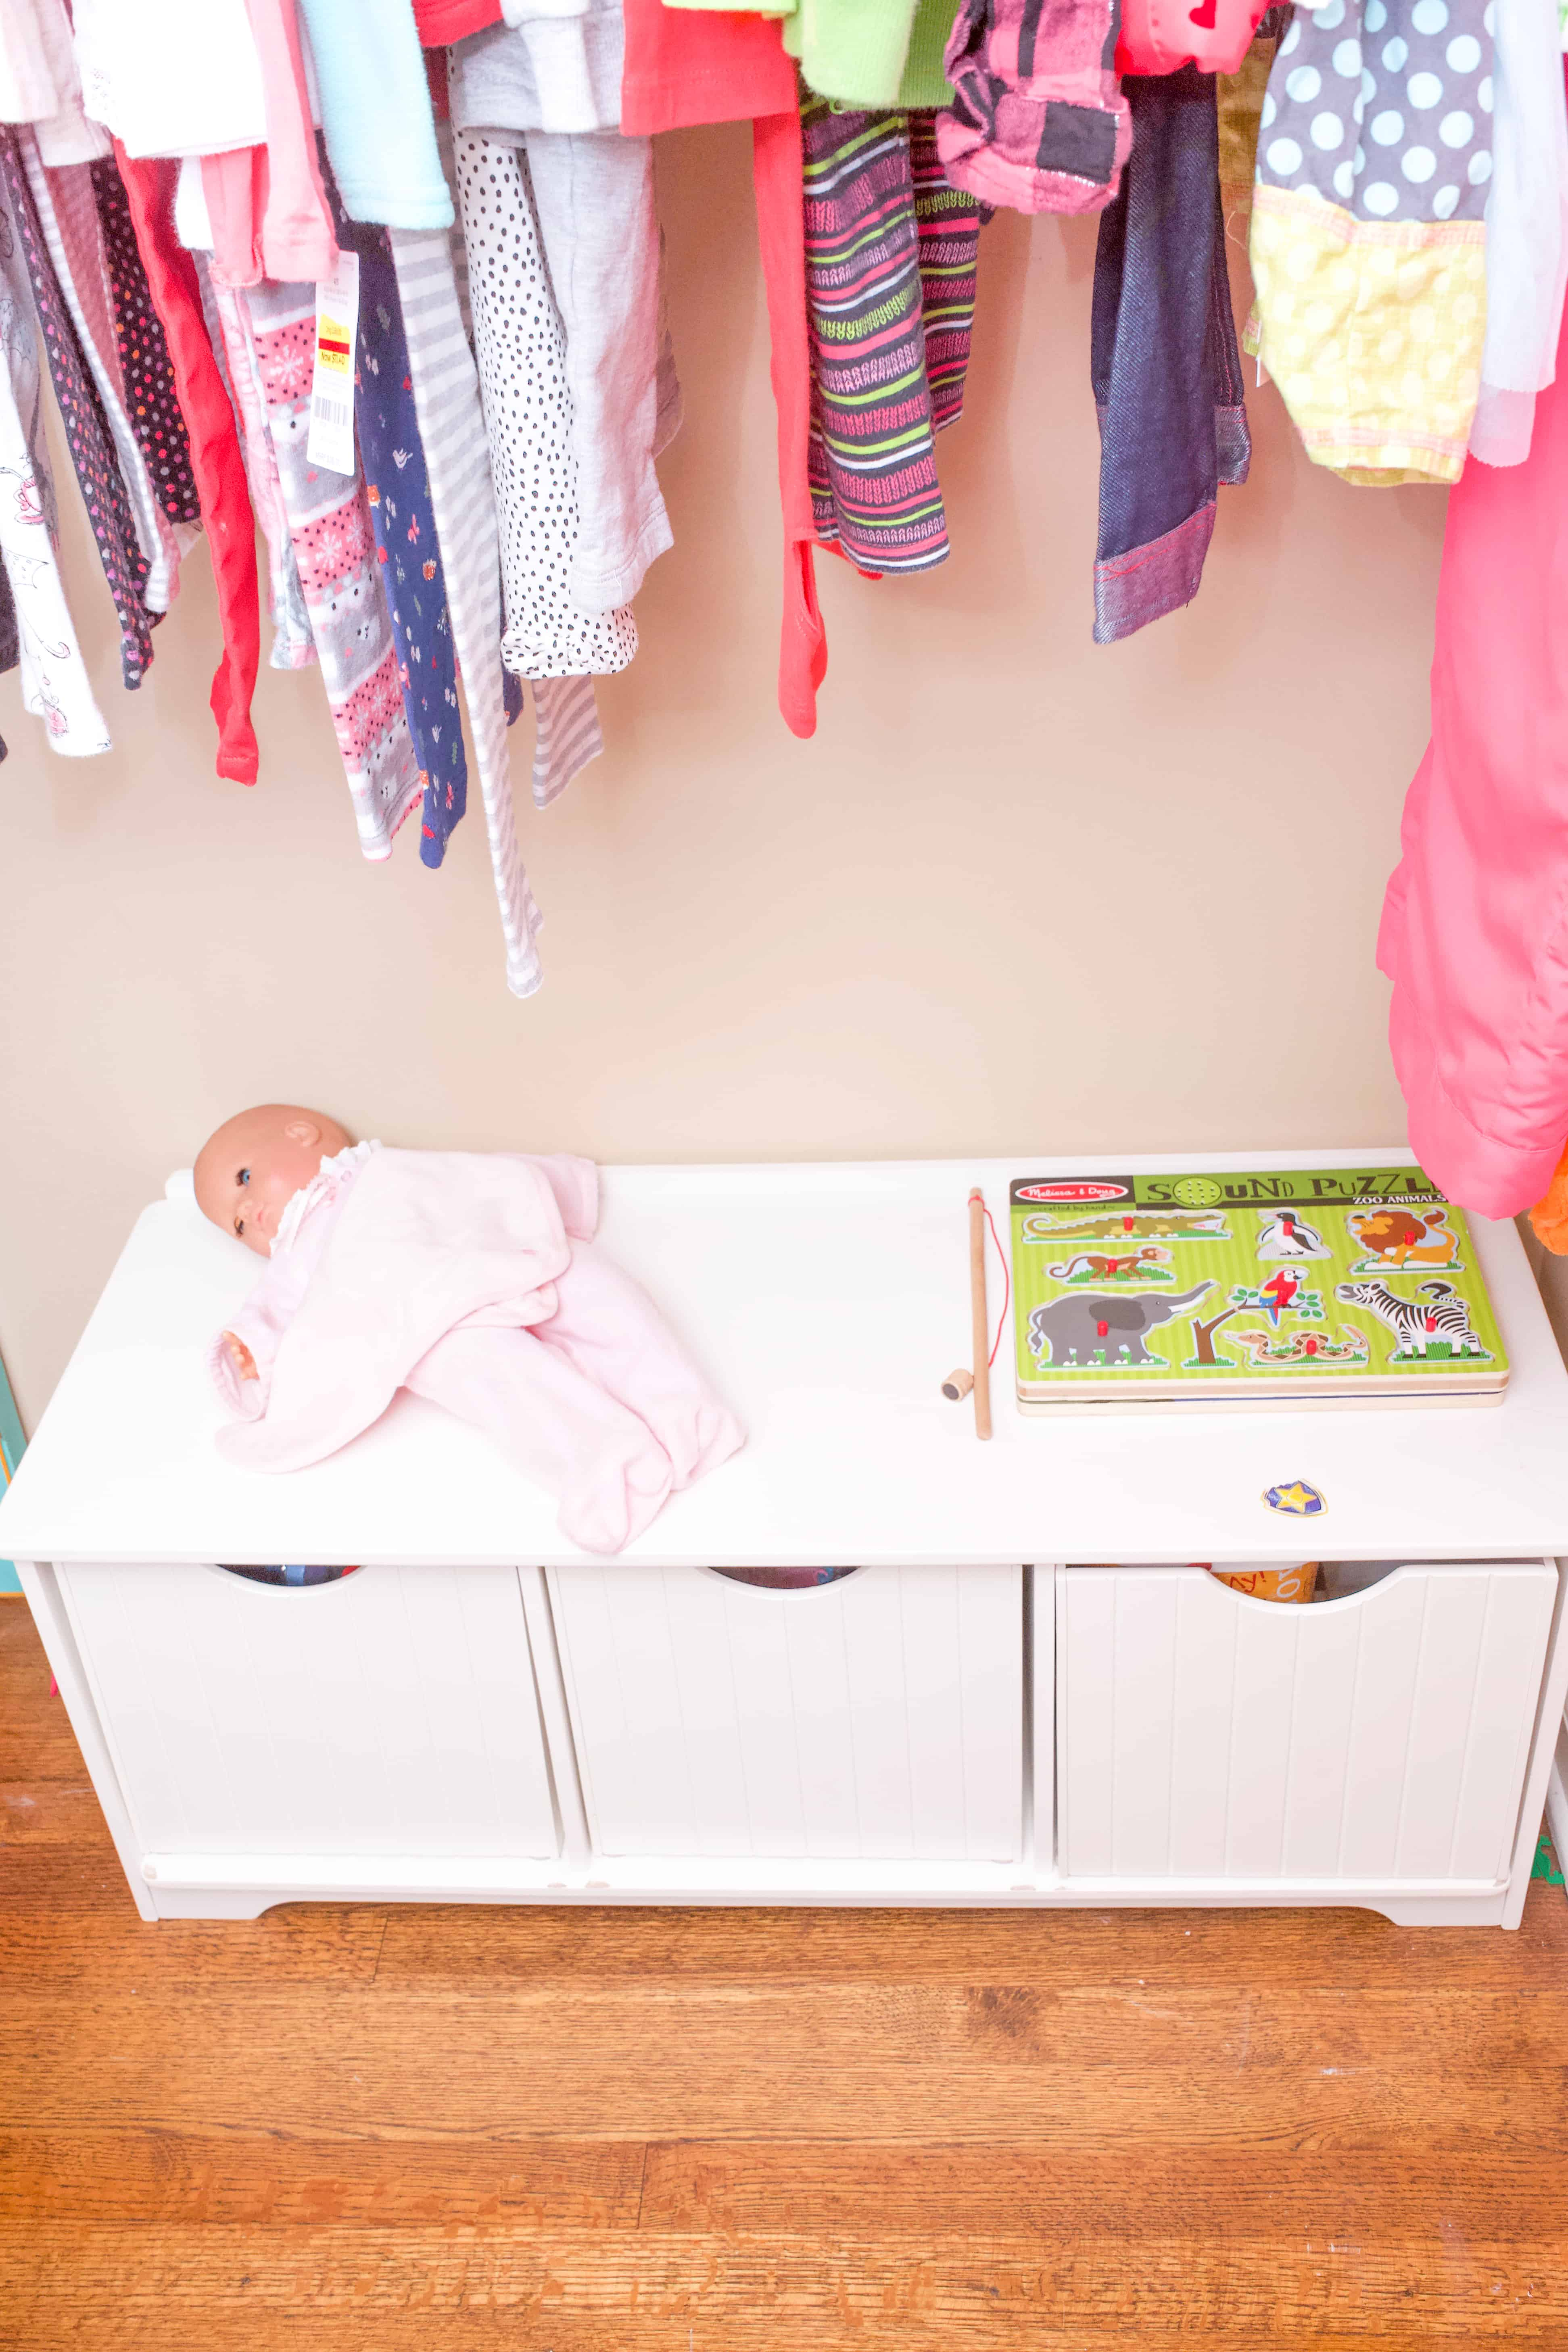 Is your house overrun with toys? Then, look no further! Here are some clever ways to organize your kid's toys.